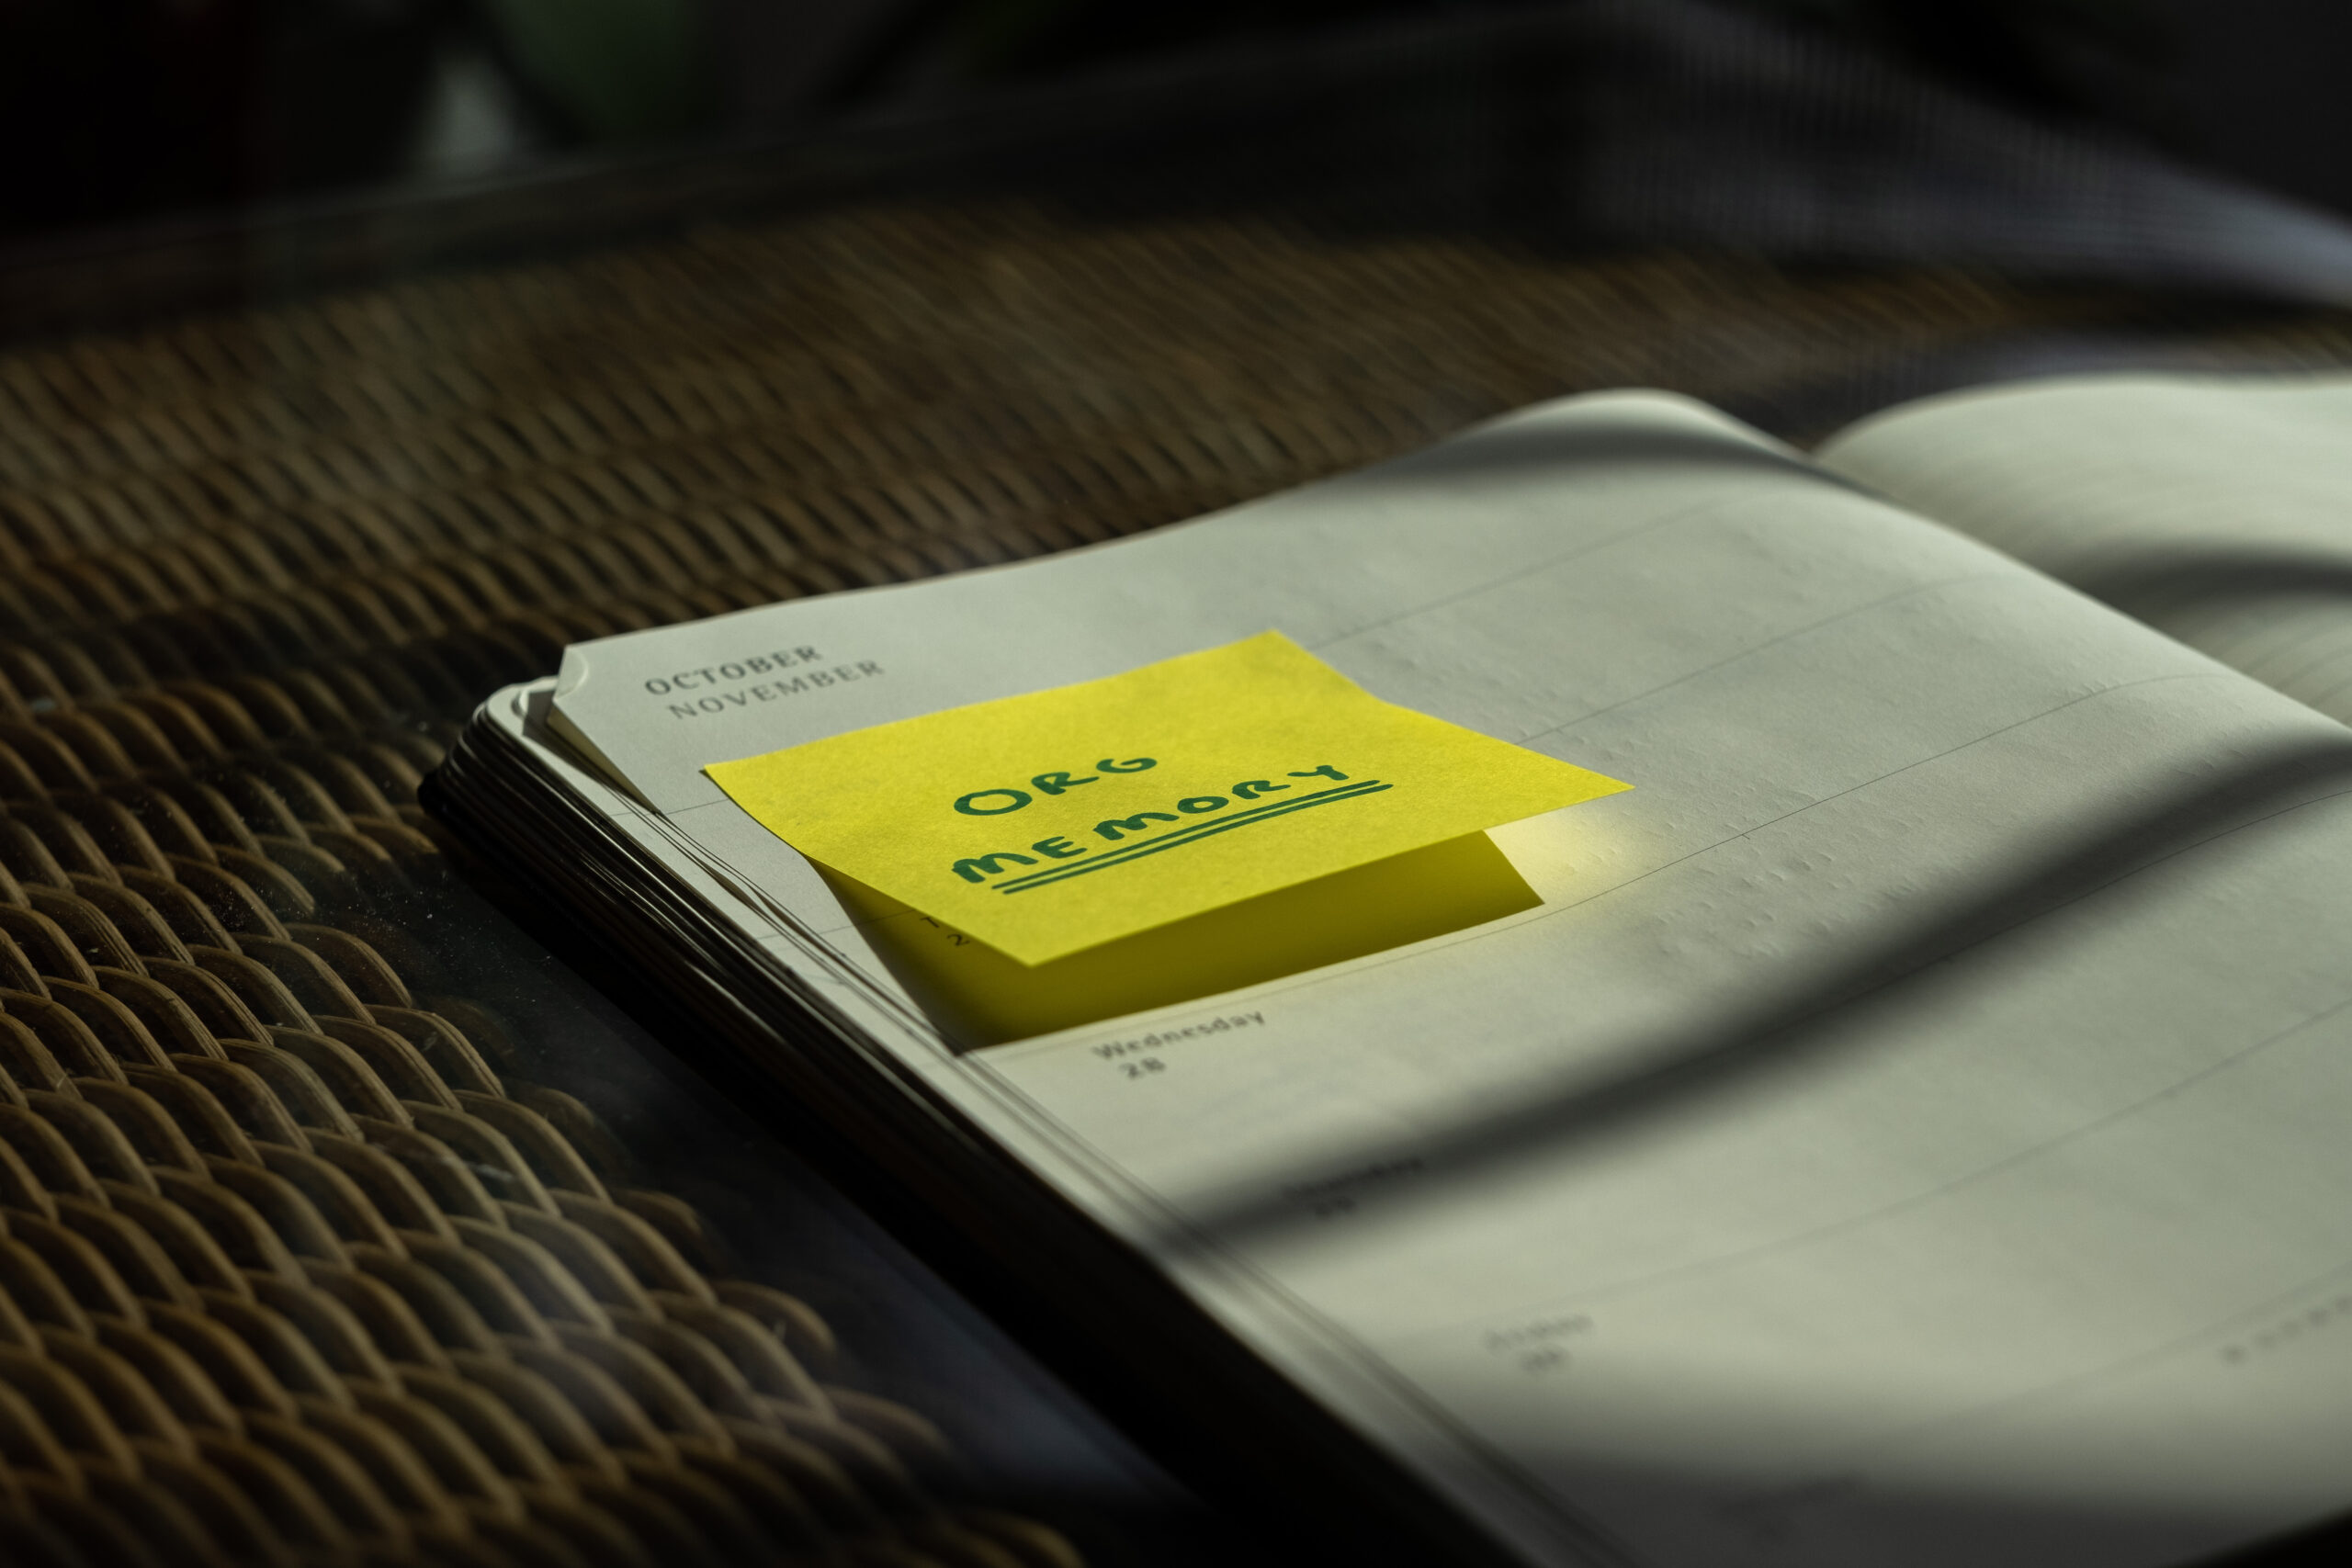 A notebook with a yellow sticky note